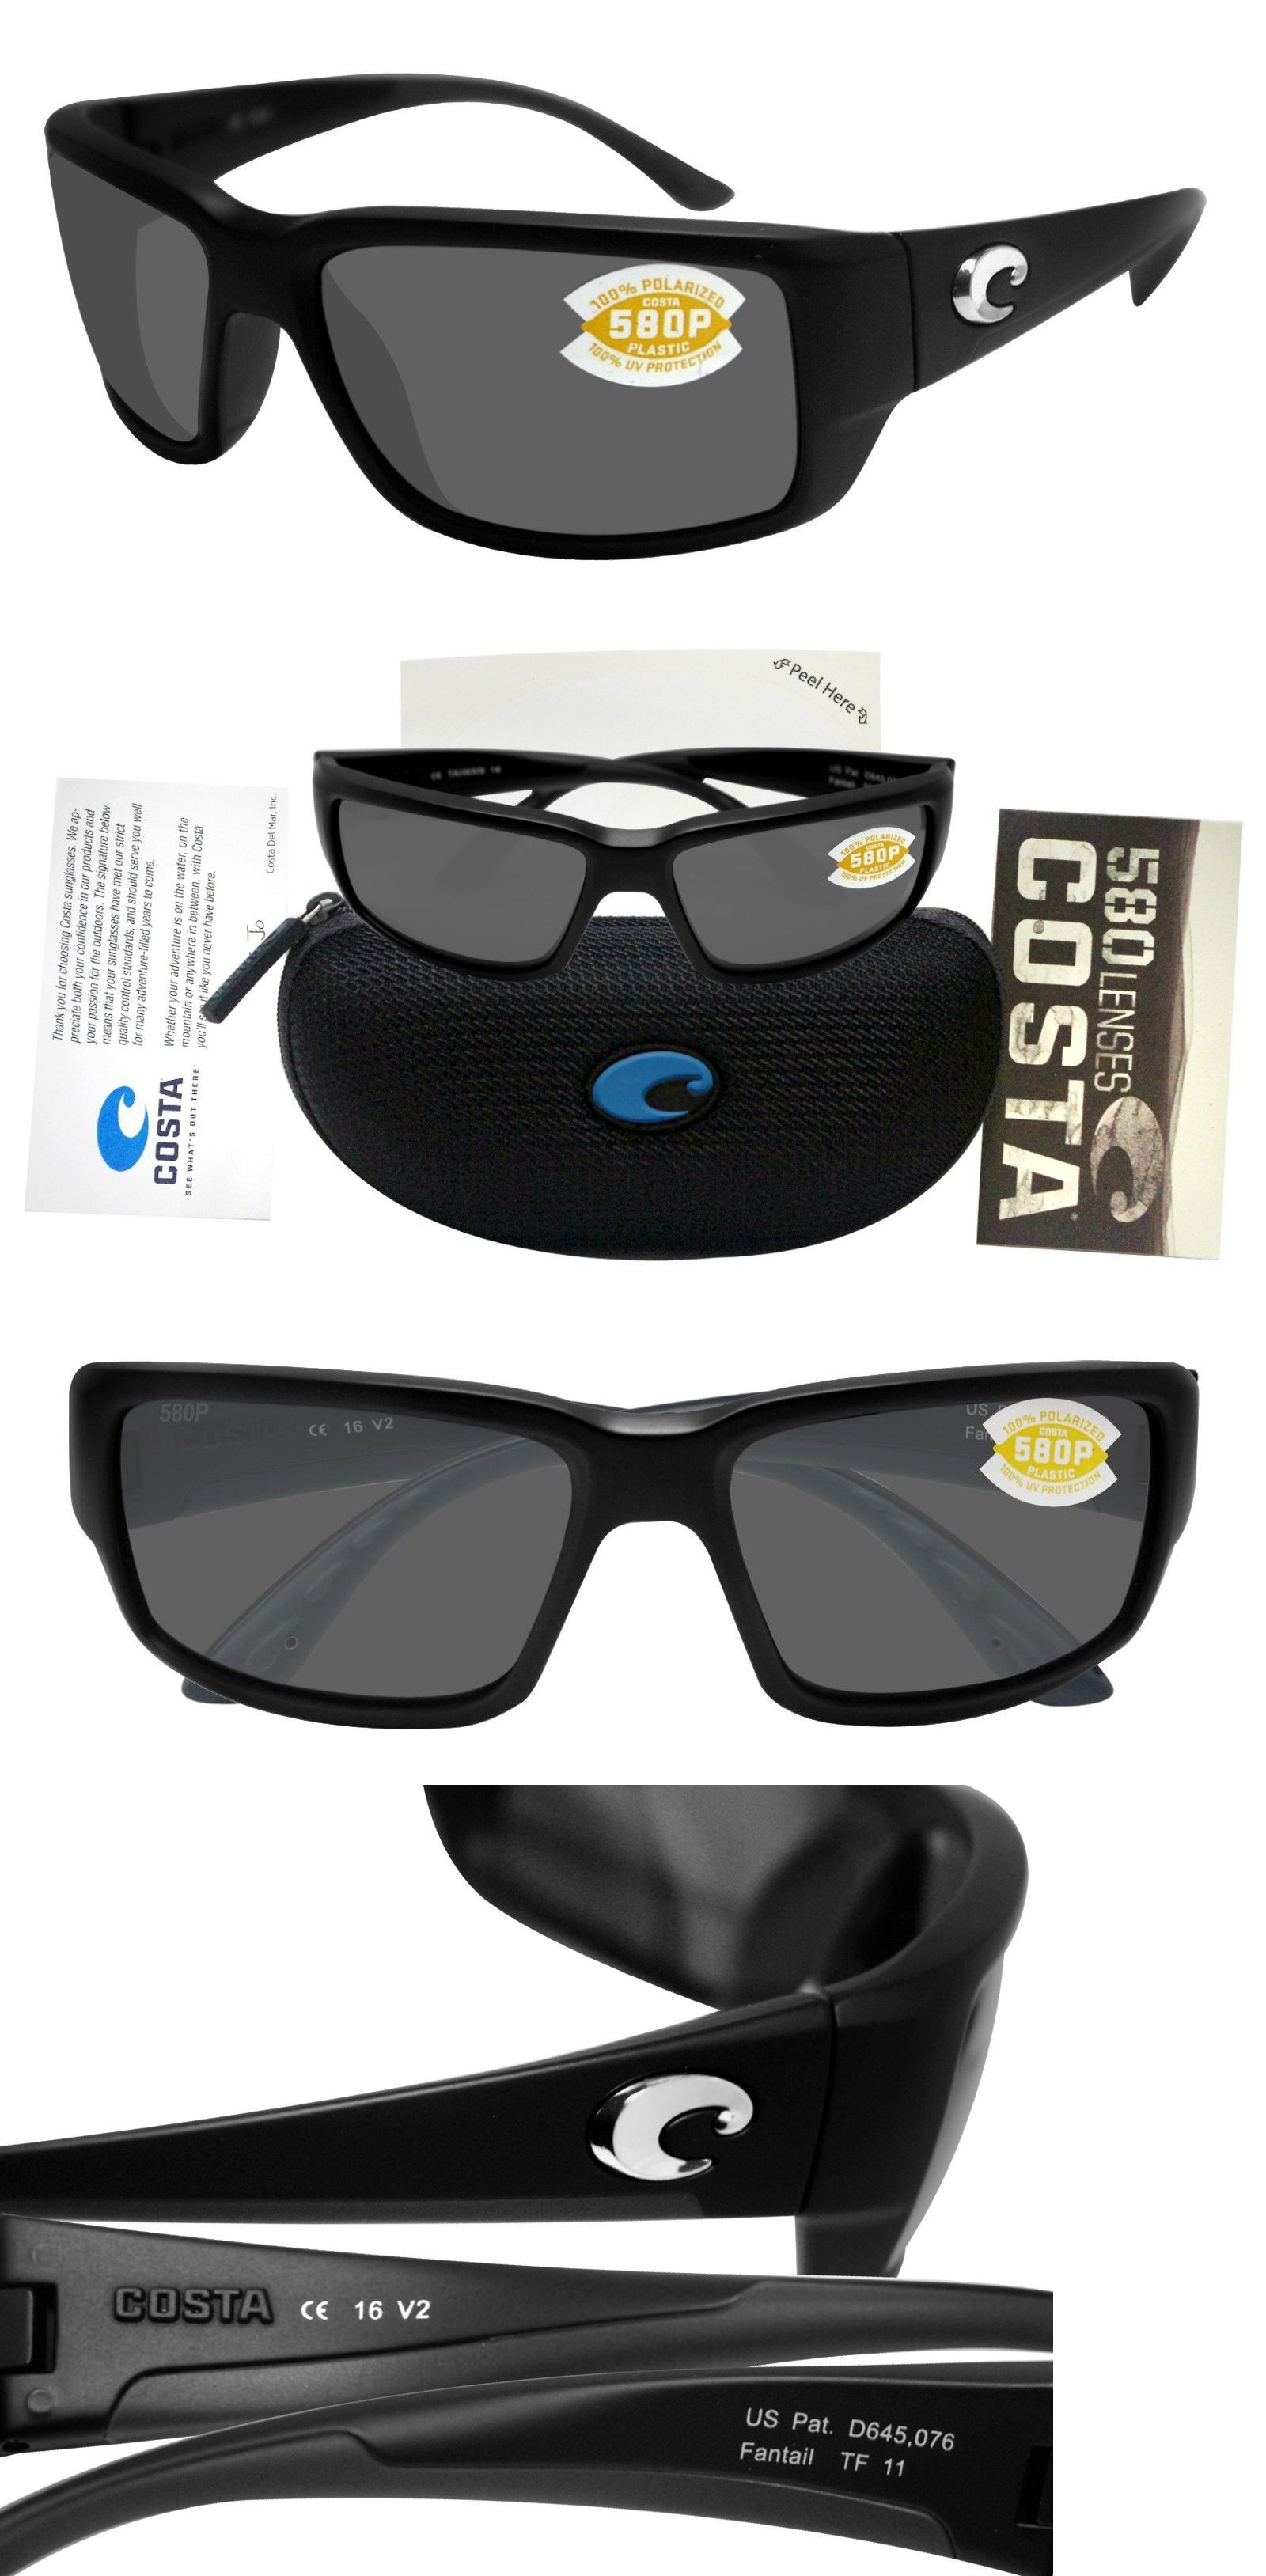 60dfc4ac80f0 Sunglasses 79720: Costa Del Mar Fantail Matte Black Frame Gray 580P Plastic  Lens New -> BUY IT NOW ONLY: $115.1 on eBay!